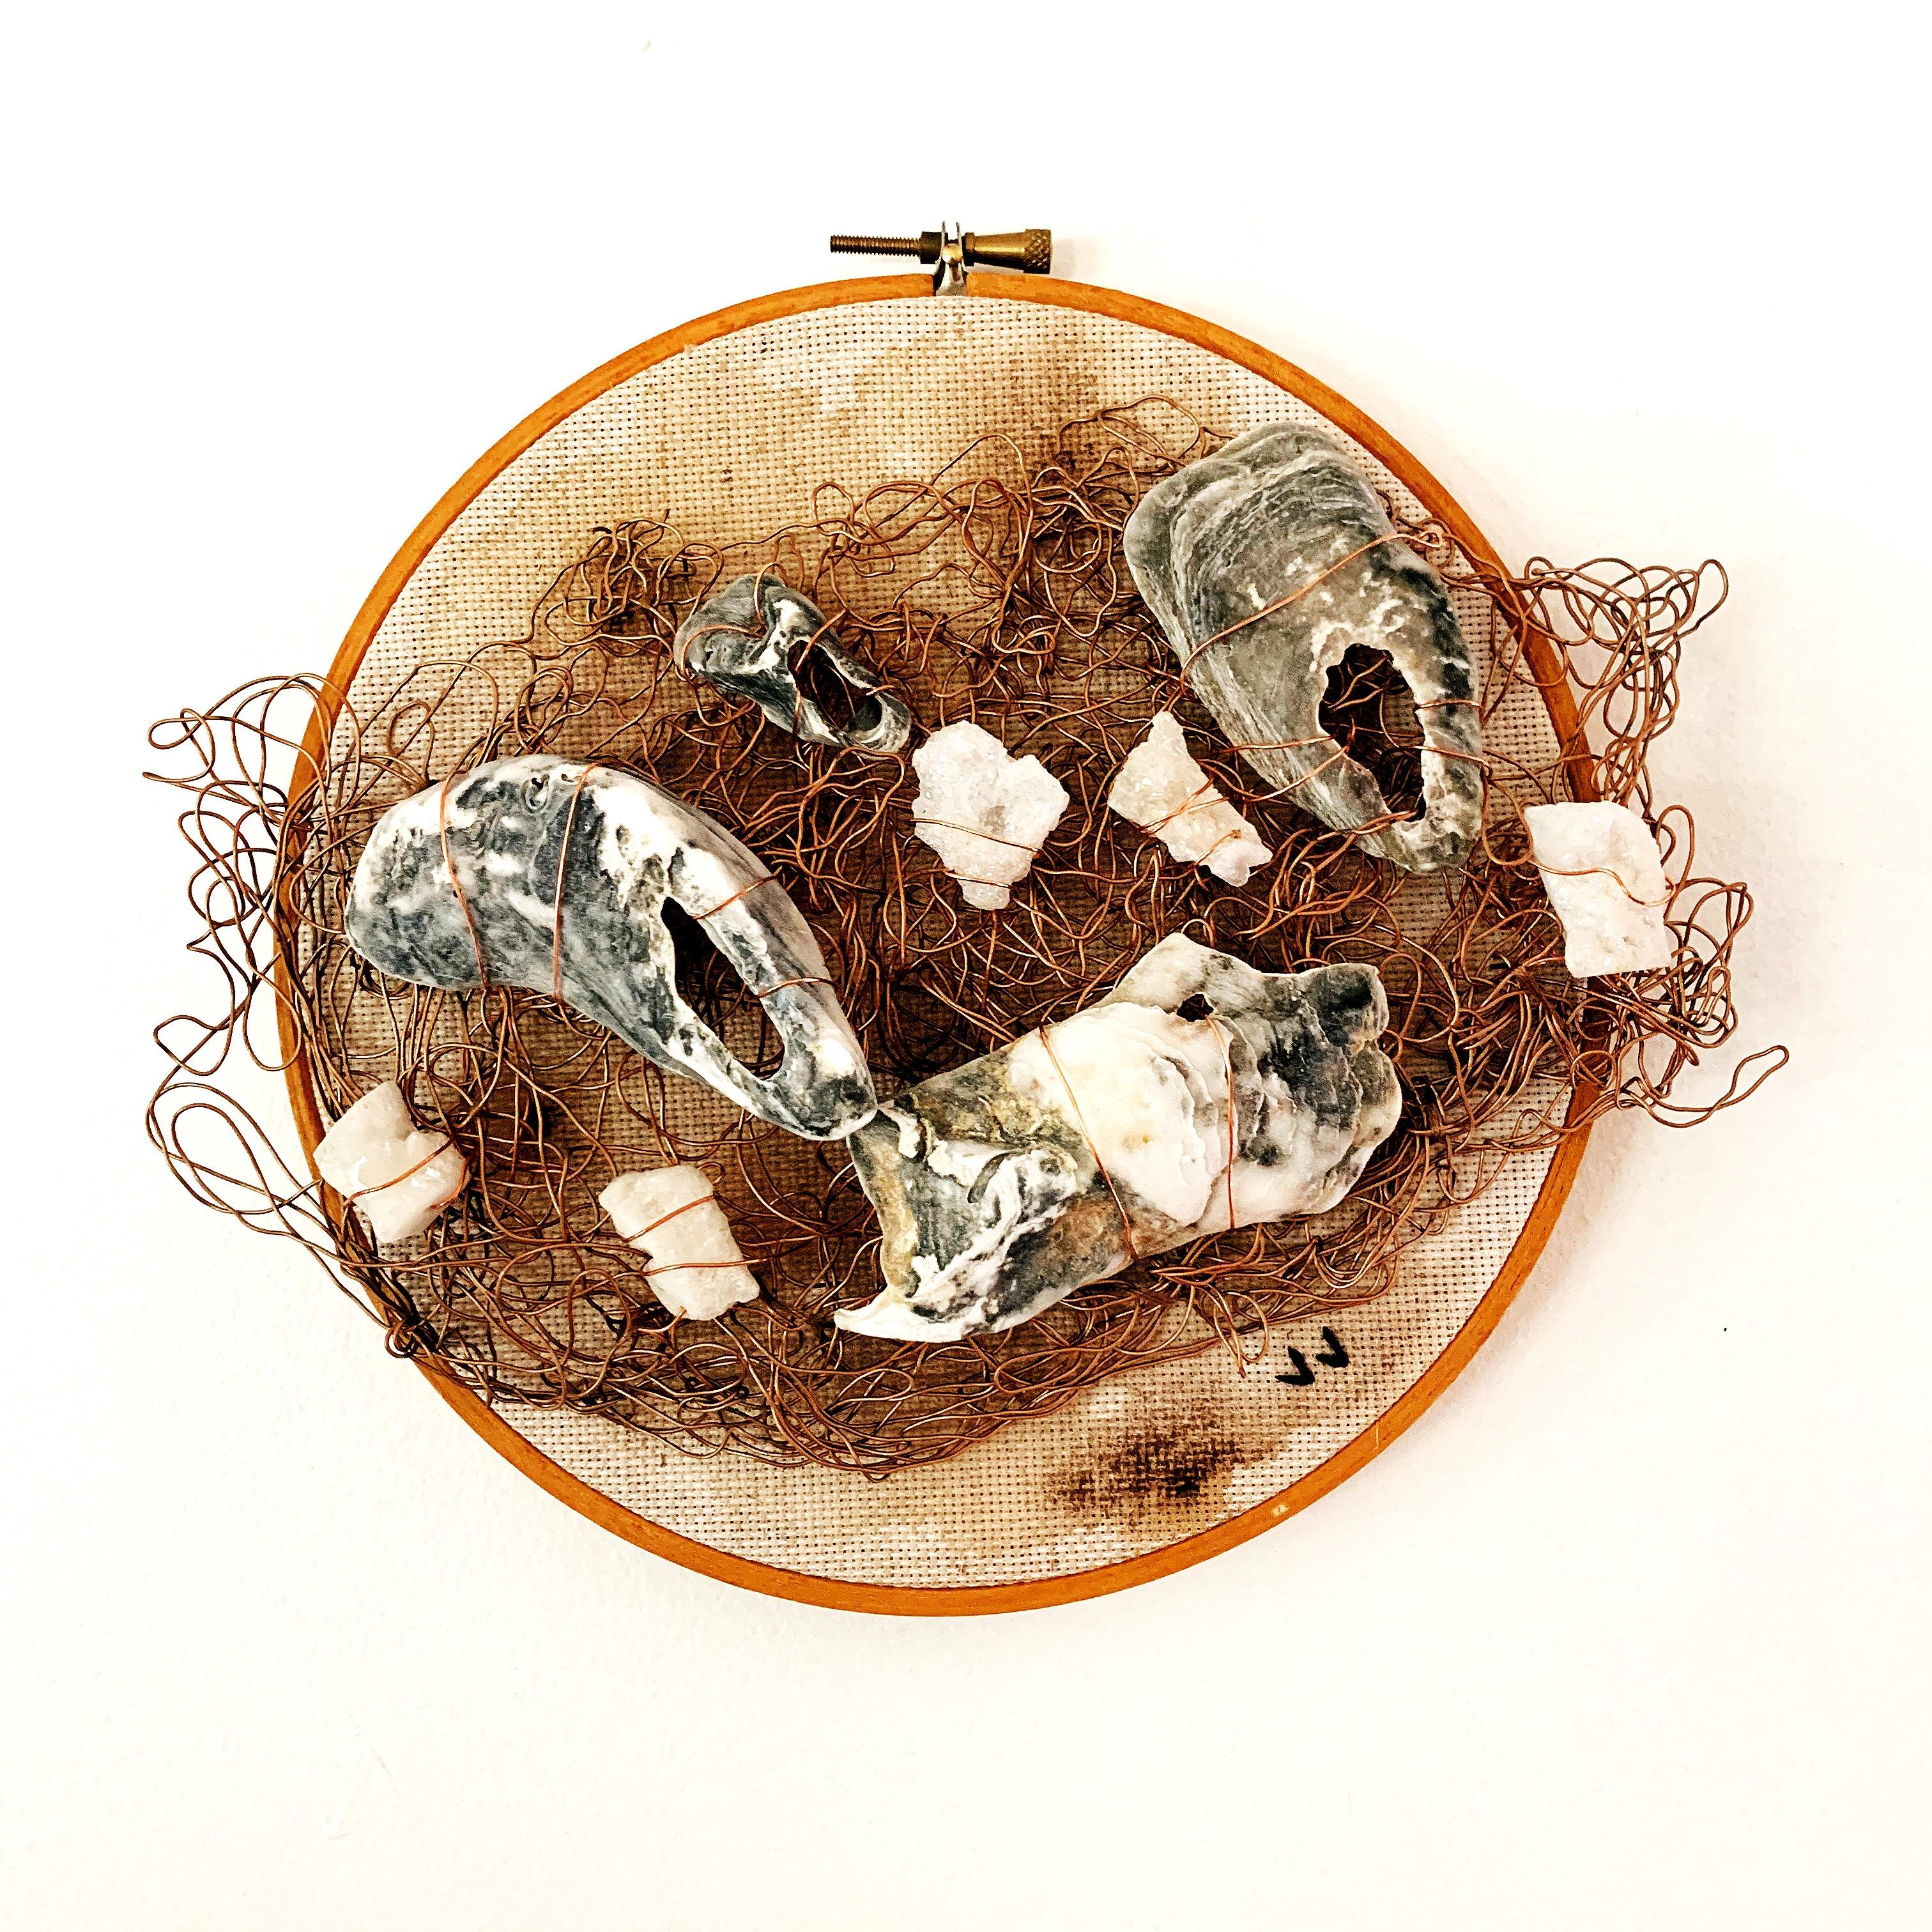 Sunsoak, 2020, wire embroidery, vintage bamboo hoop, oyster shells, earth tones